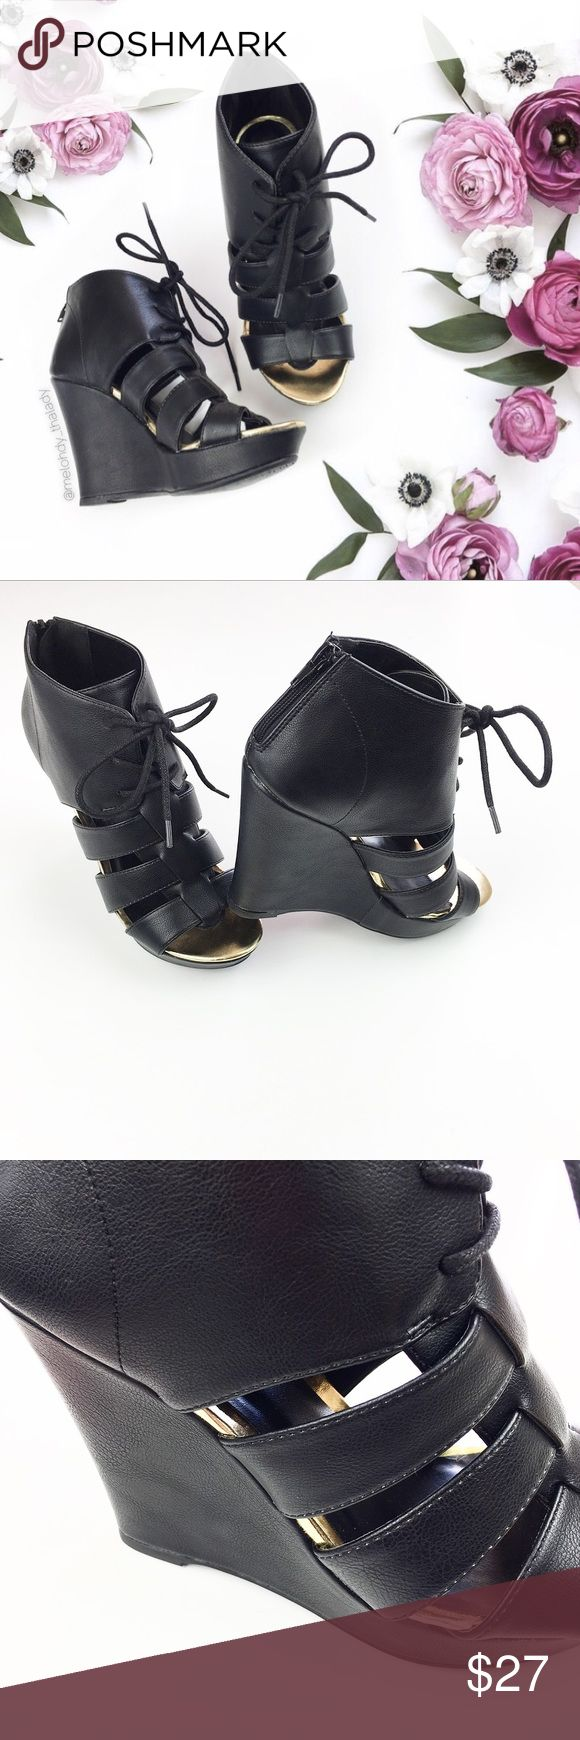 Black/Gold Open Toe Heel Wedges Black/gold wedges with open toe design. Top of the shoe can be tied. Shoe is black all around, the inside is black and gold. The wedges have a zipper on the back.  Measures Heel: 11cm Platform on the front: 3cm  ▪️NWT (without box) 🚫No Trade Shoes Wedges